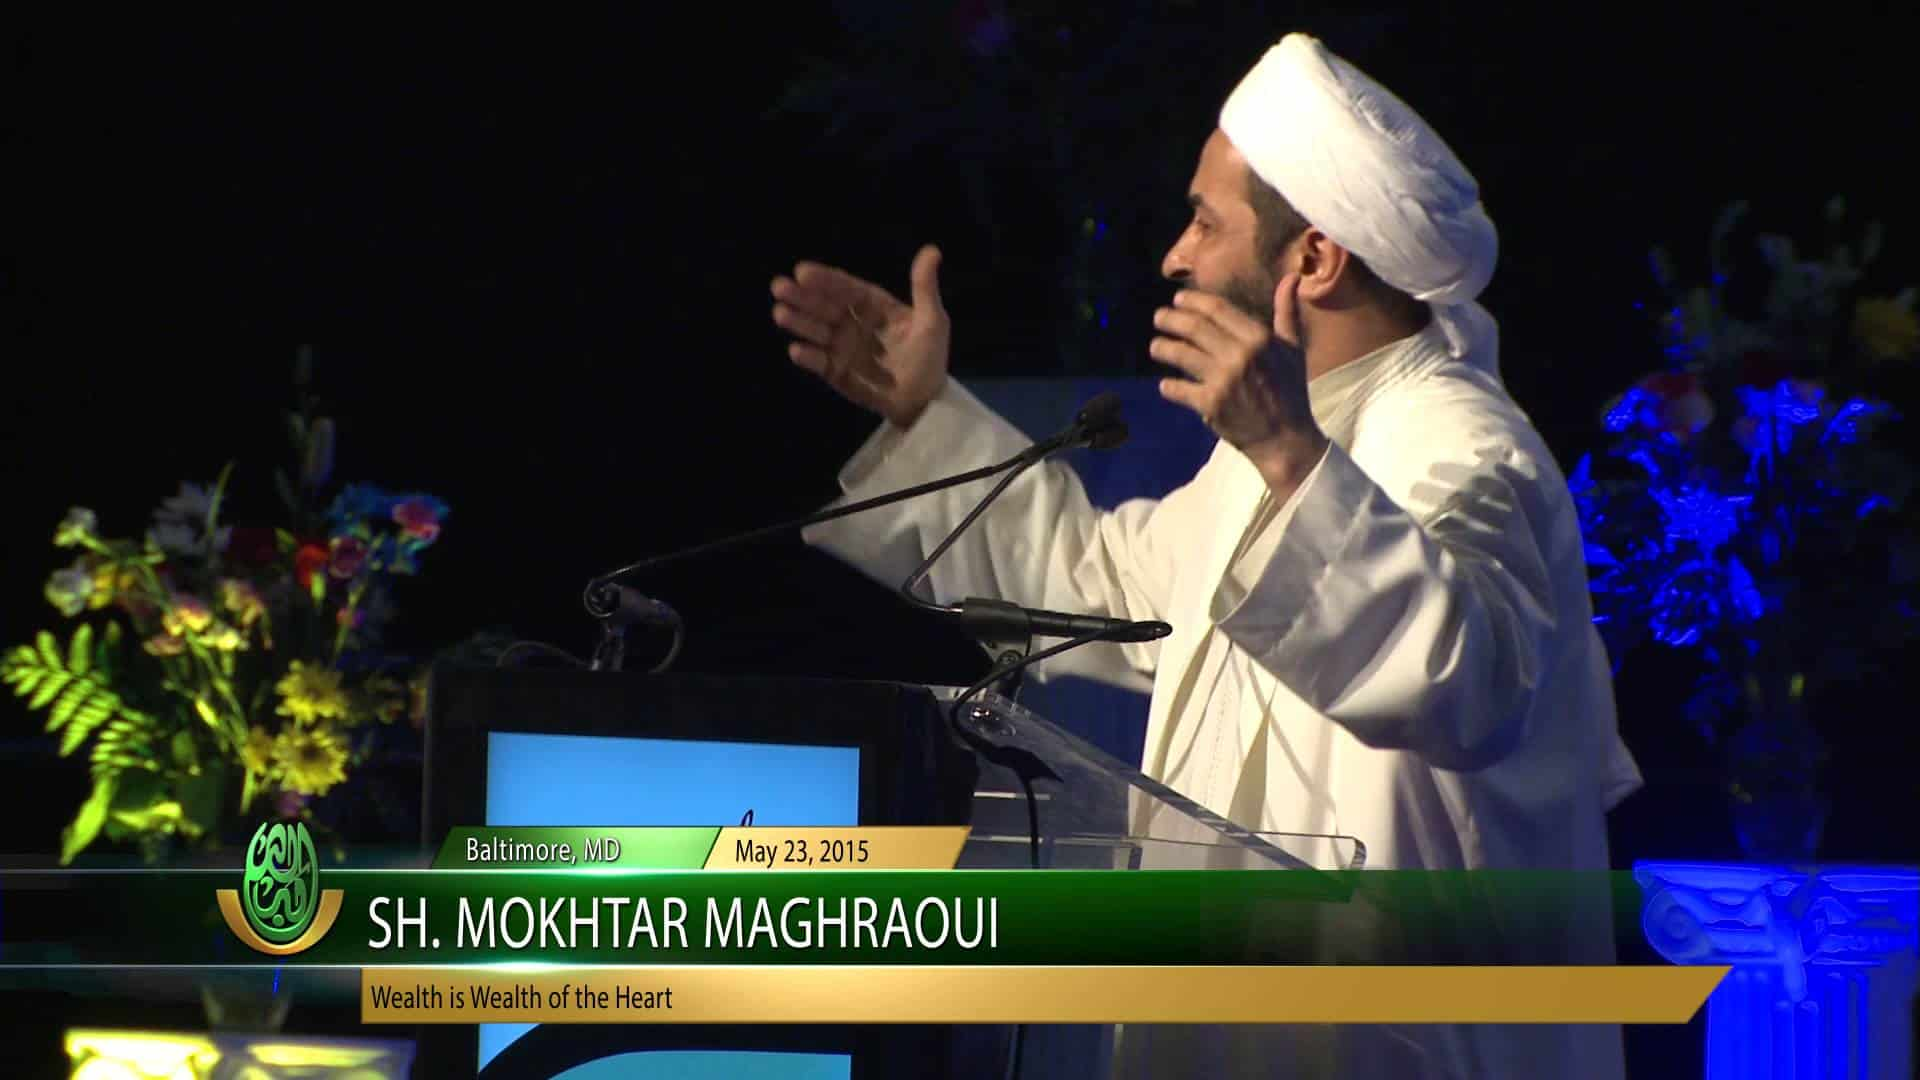 Mokhtar Maghraoui – Wealth is the Wealth of the Heart